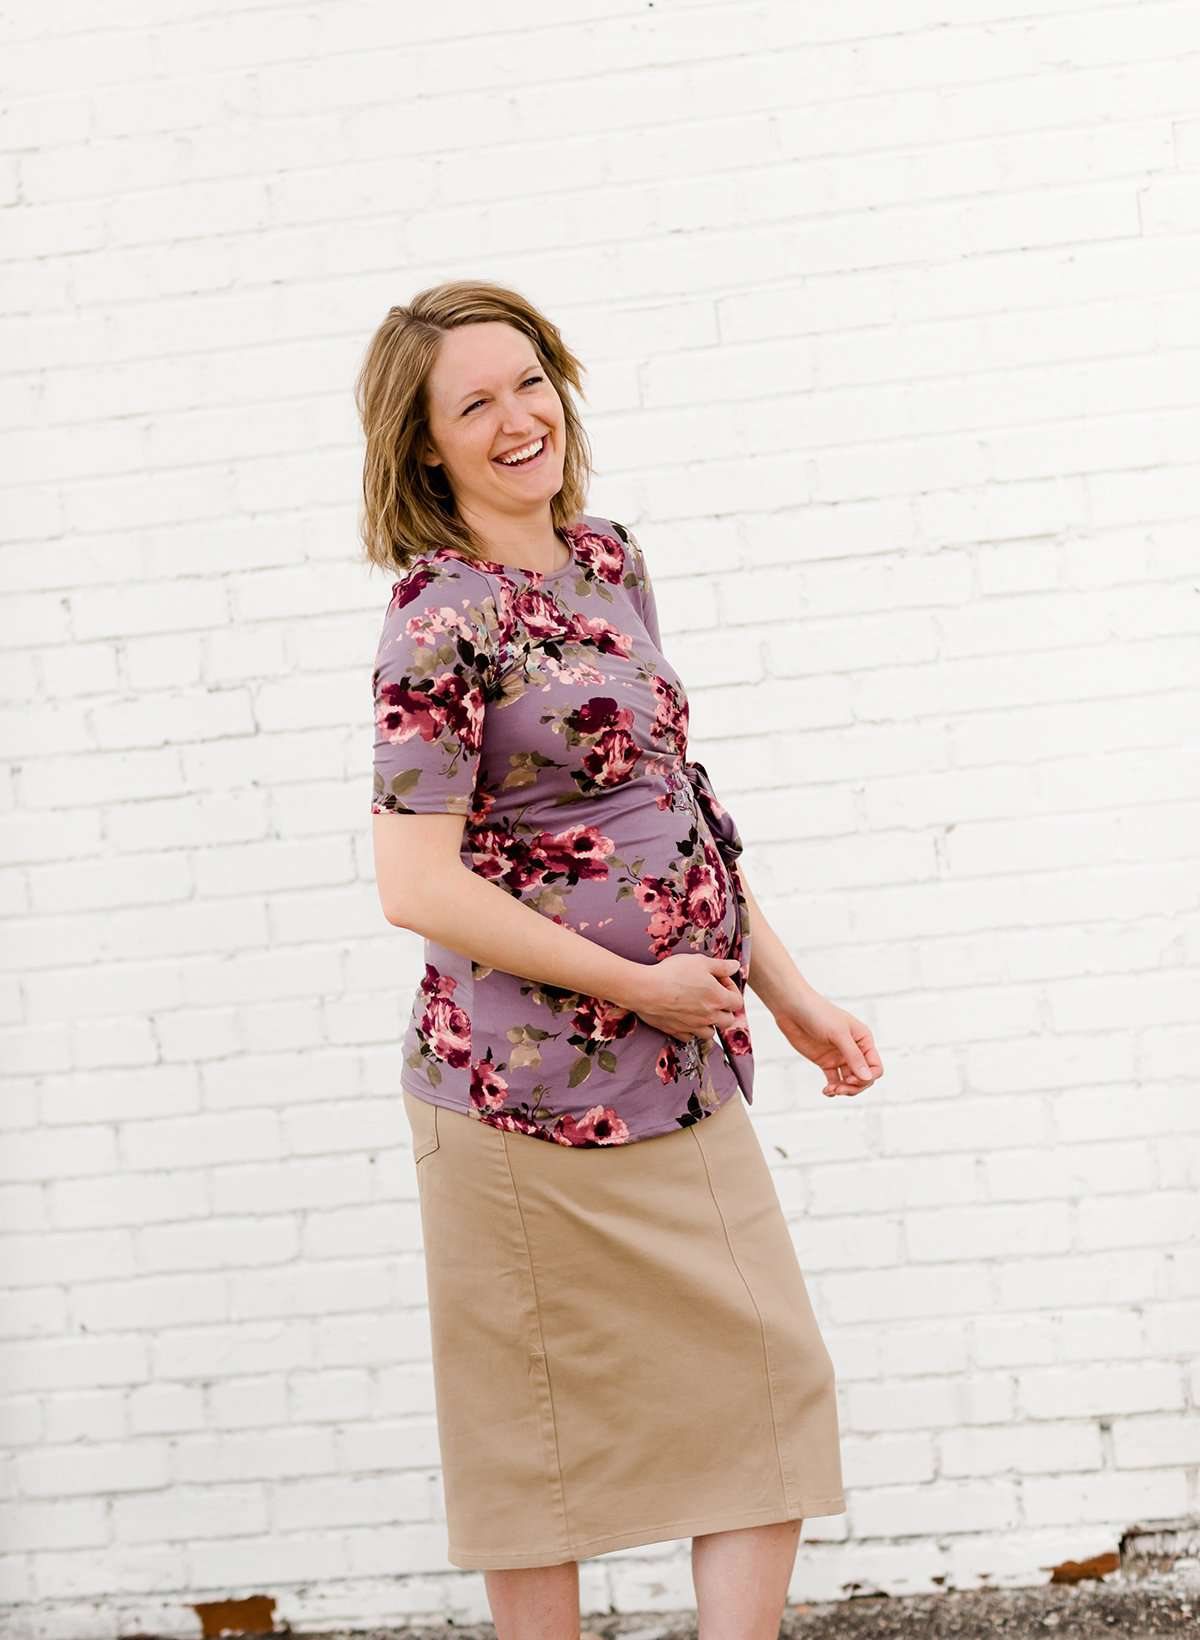 Modest floral buttery soft maternity top